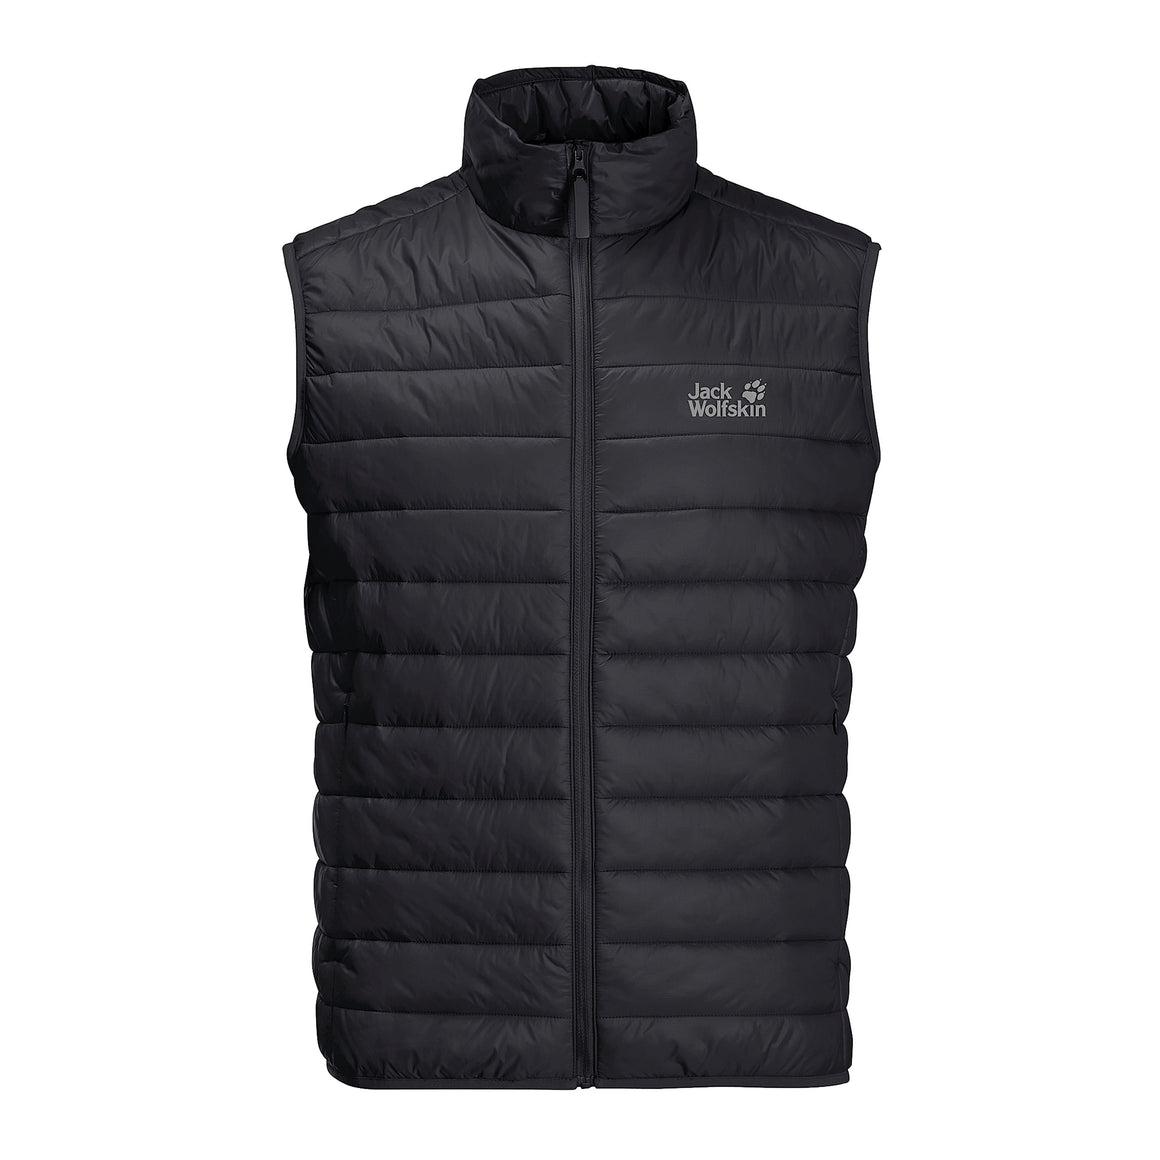 JWP Vest For Men in Black